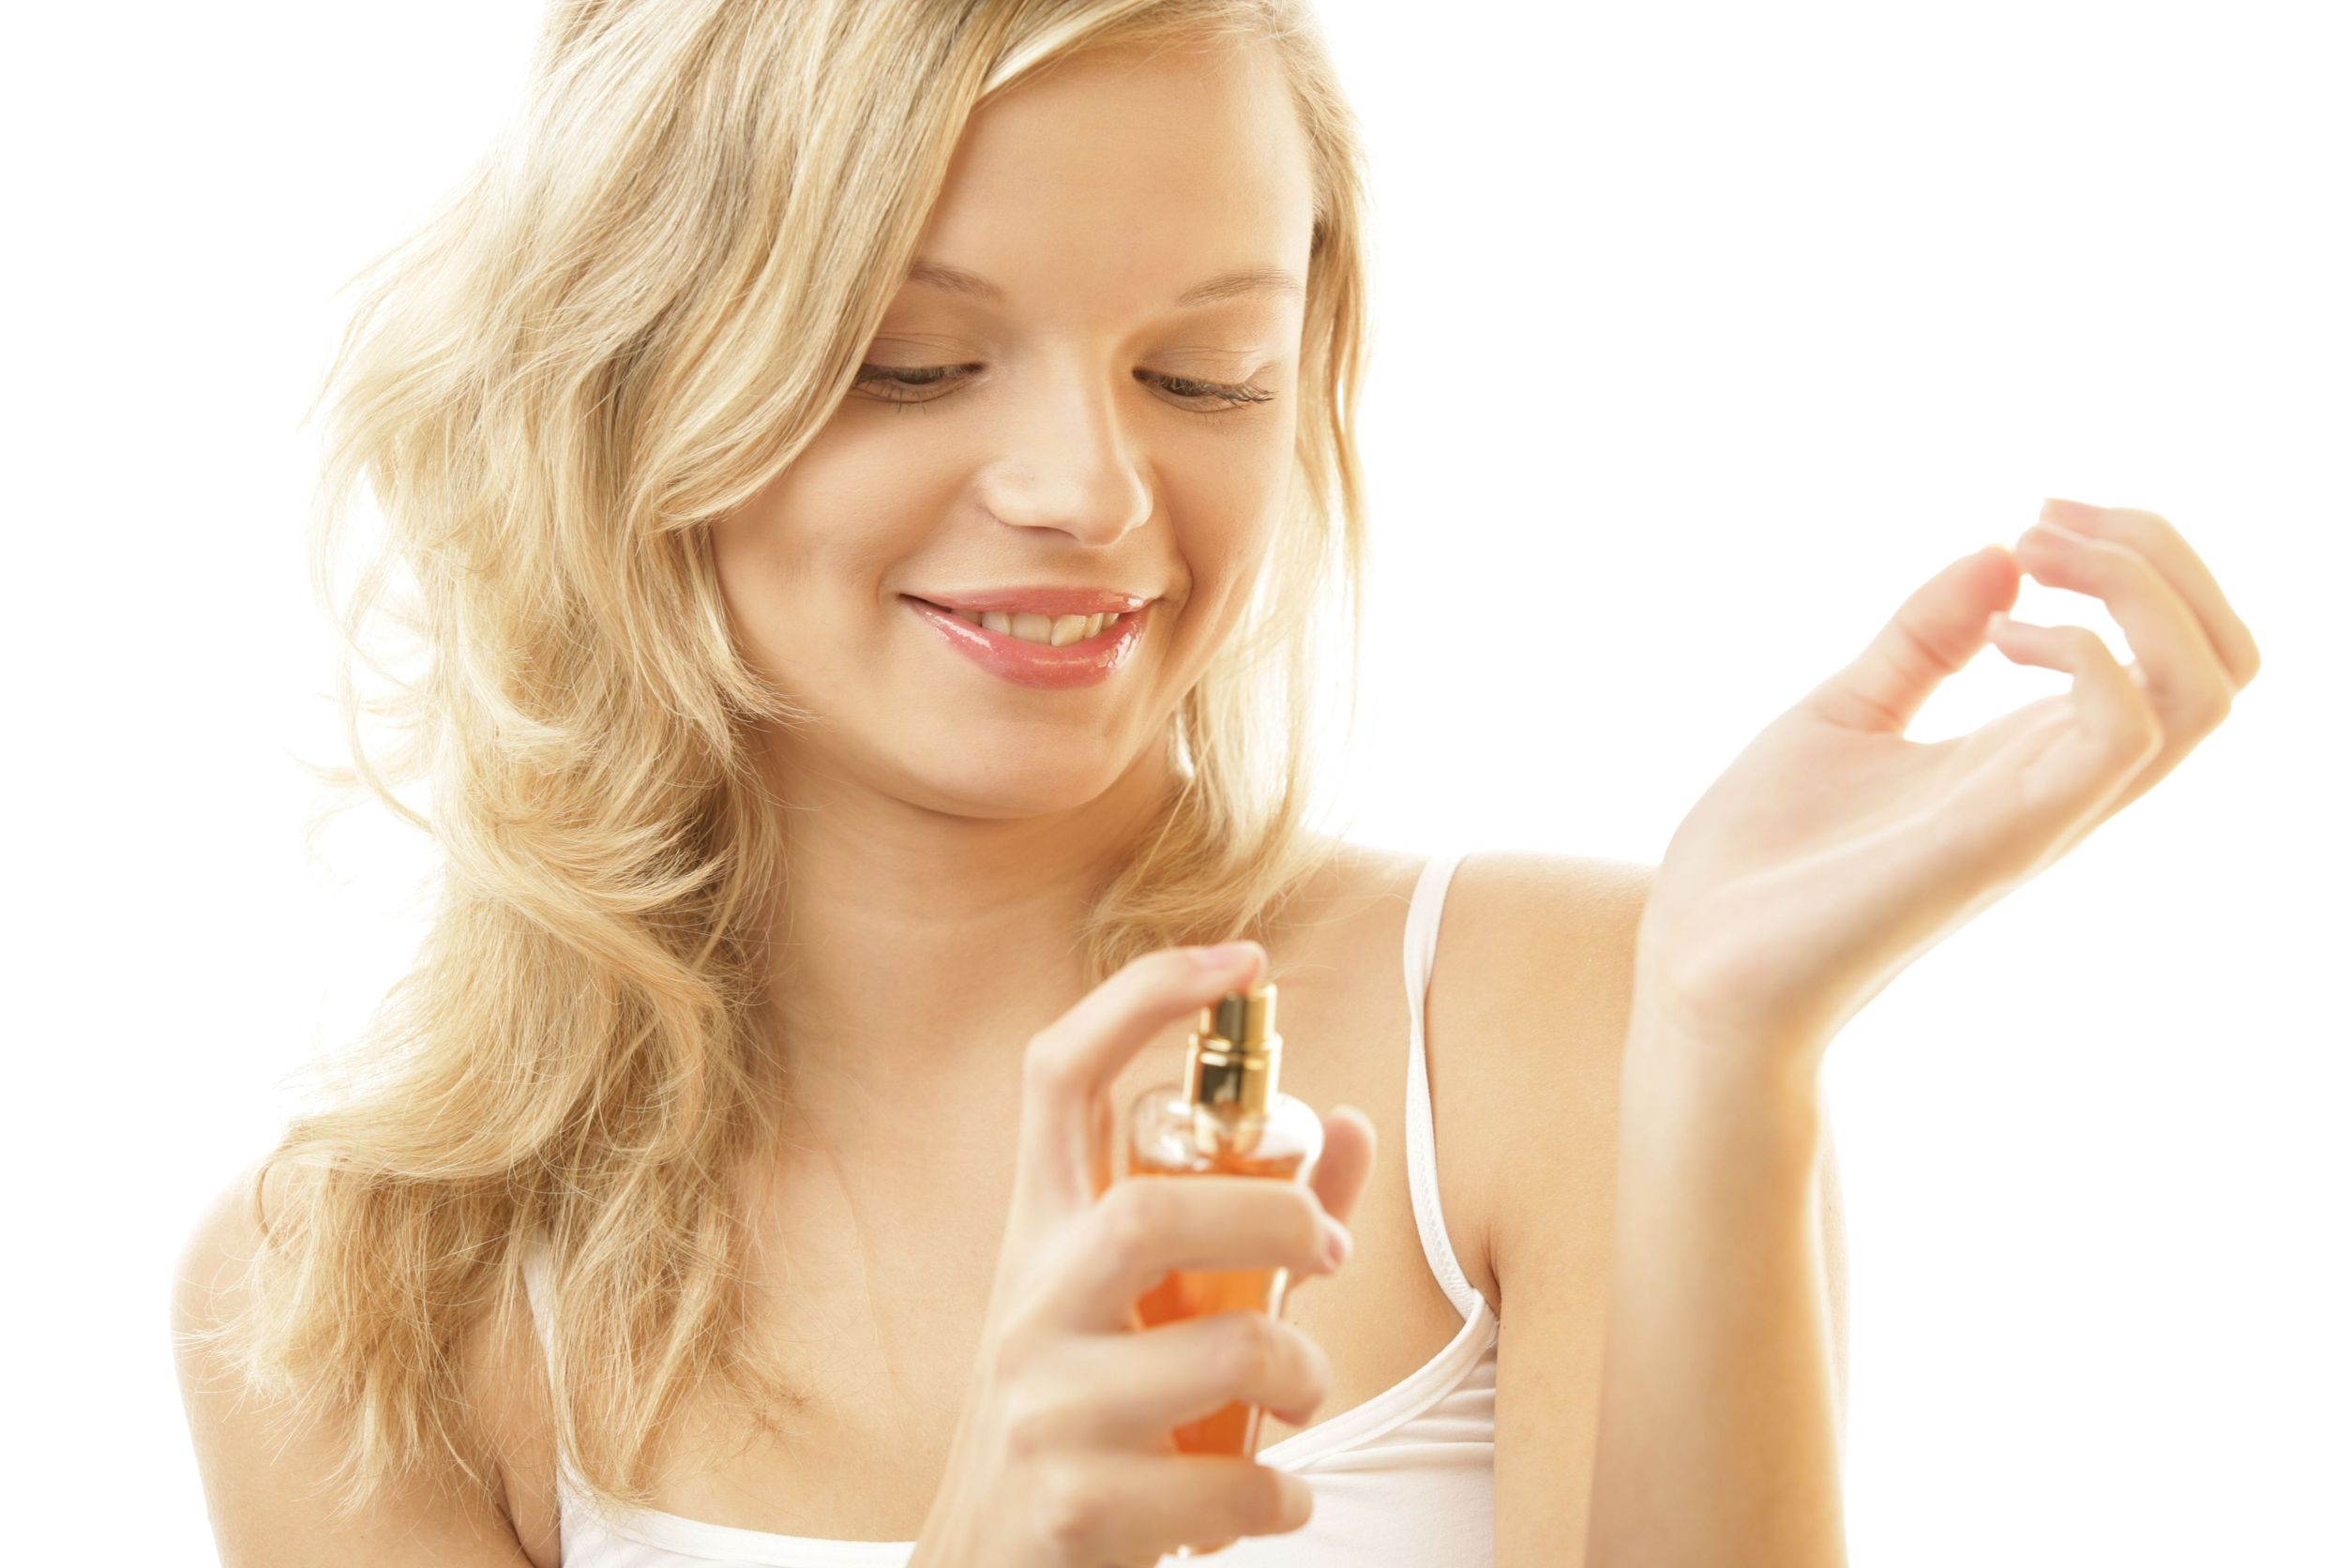 How to Choose the Perfume that Suits You